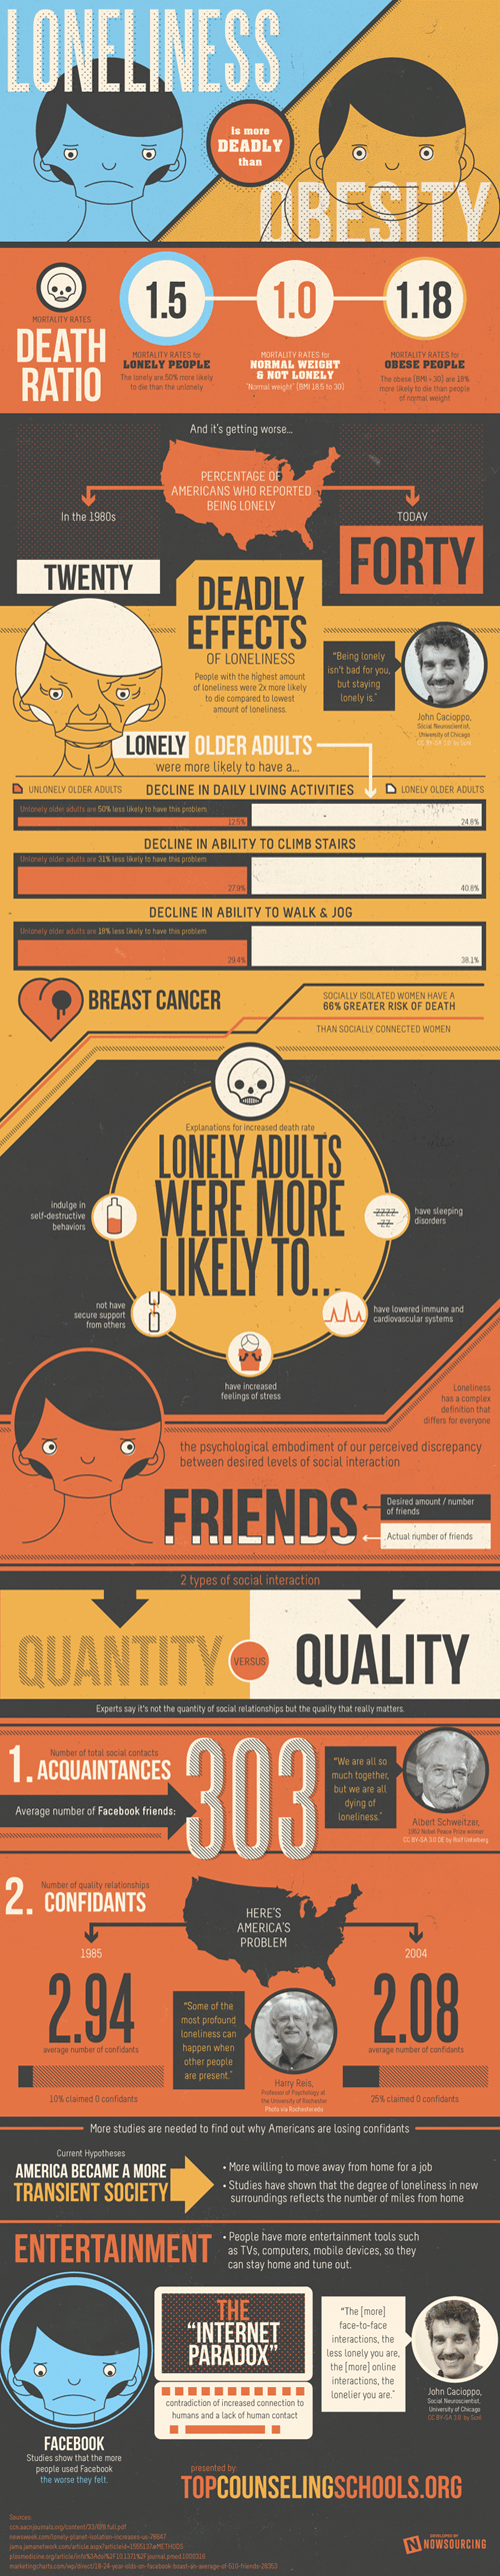 loneliness,obesity,infographic